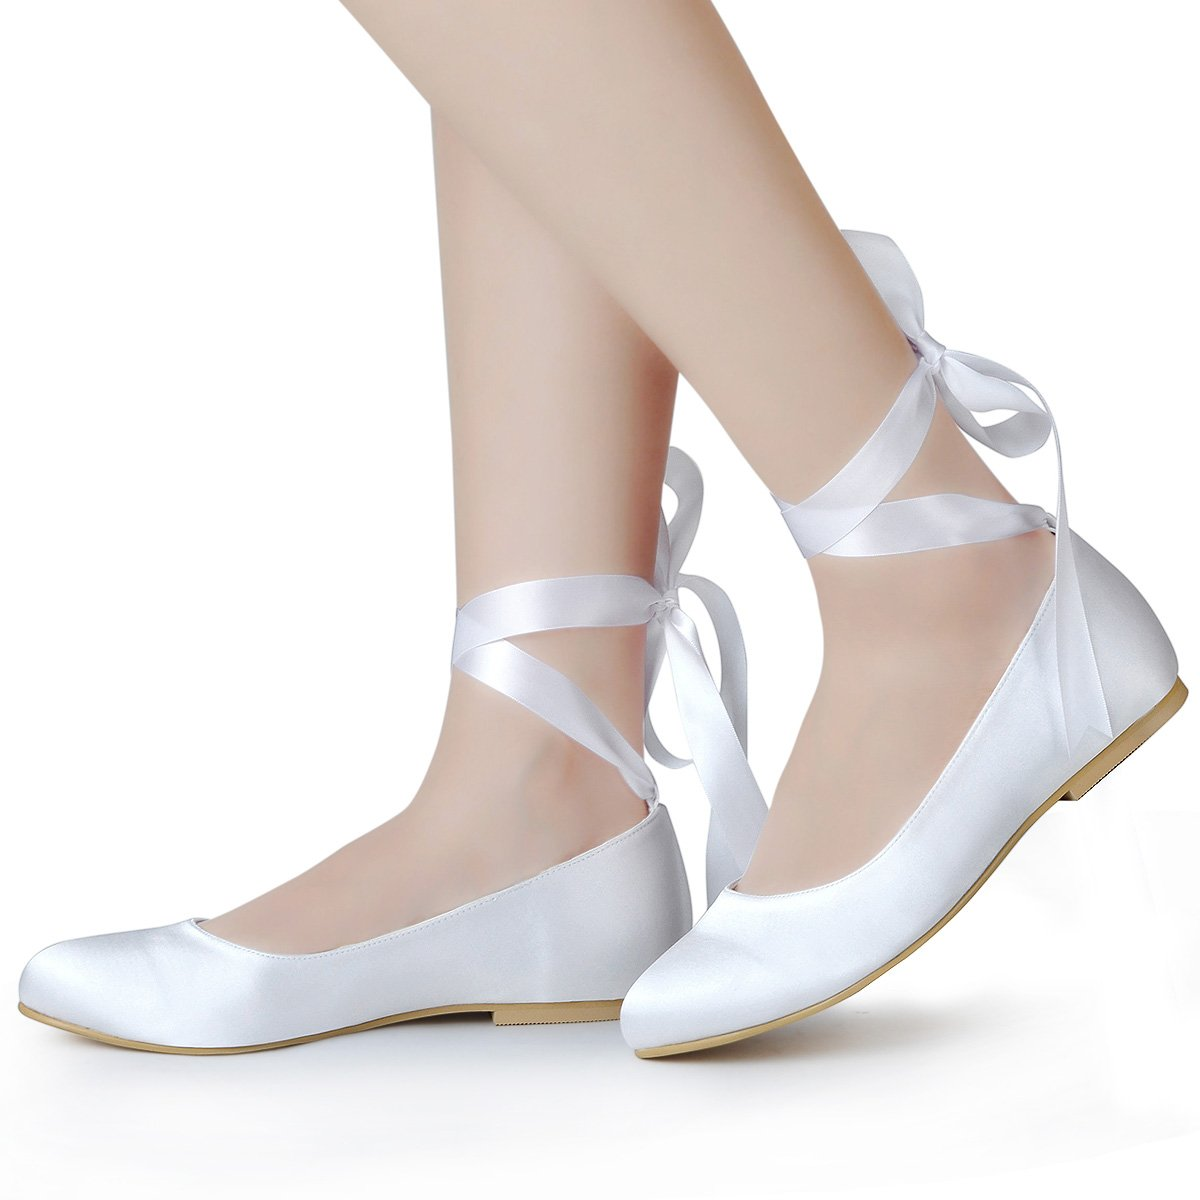 Victorian Wedding Dresses, Shoes, Accessories ElegantPark Women Comfort Flats Closed Toe Ribbon Tie Satin Wedding Bridal Shoes $42.95 AT vintagedancer.com